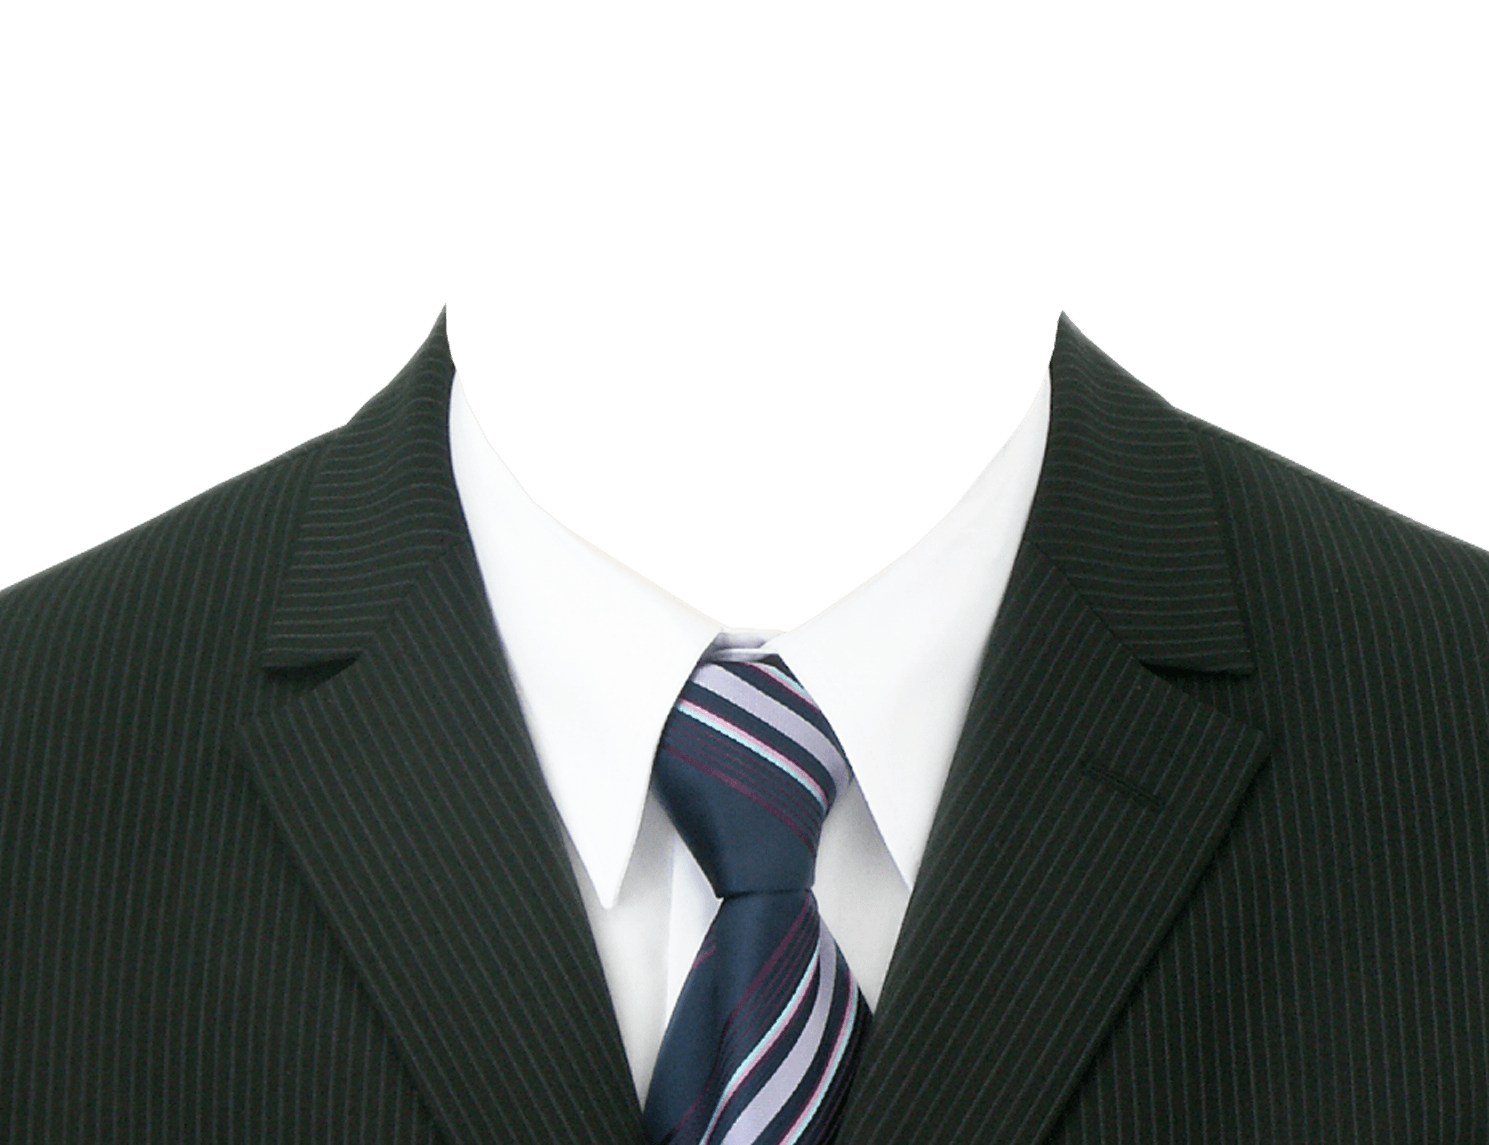 Suit Tie Neck backgrounds free,